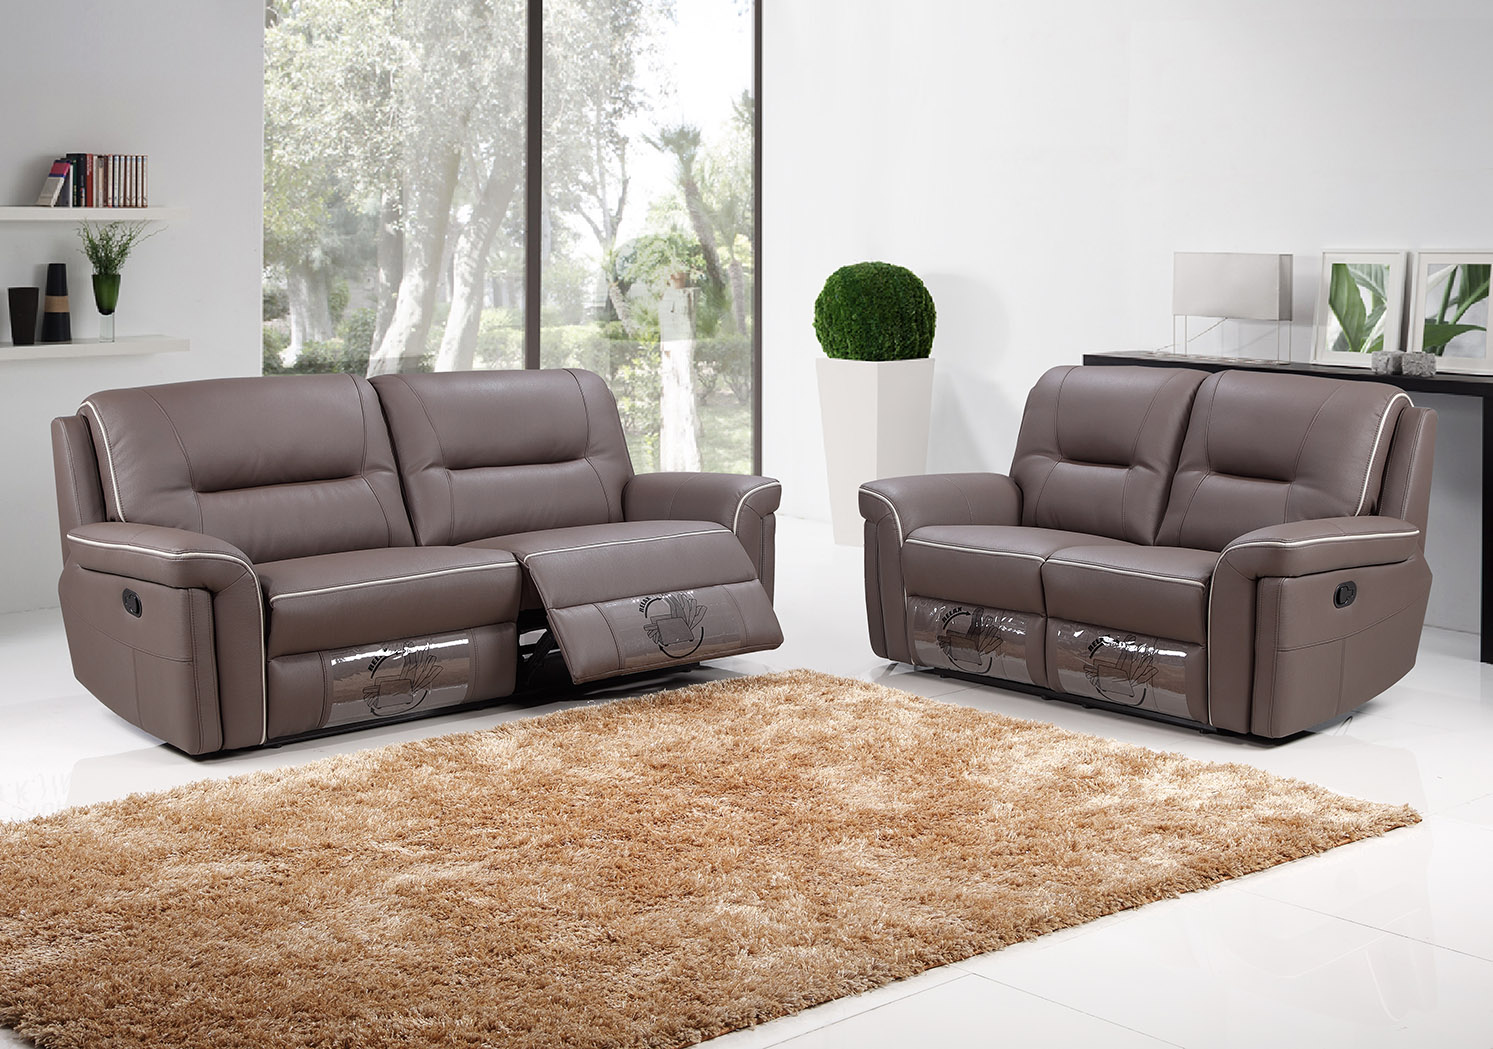 PG 9203 modern recliners & 3rr+2rr f9203 modern recliner lounges suite | Fortune Furniture islam-shia.org